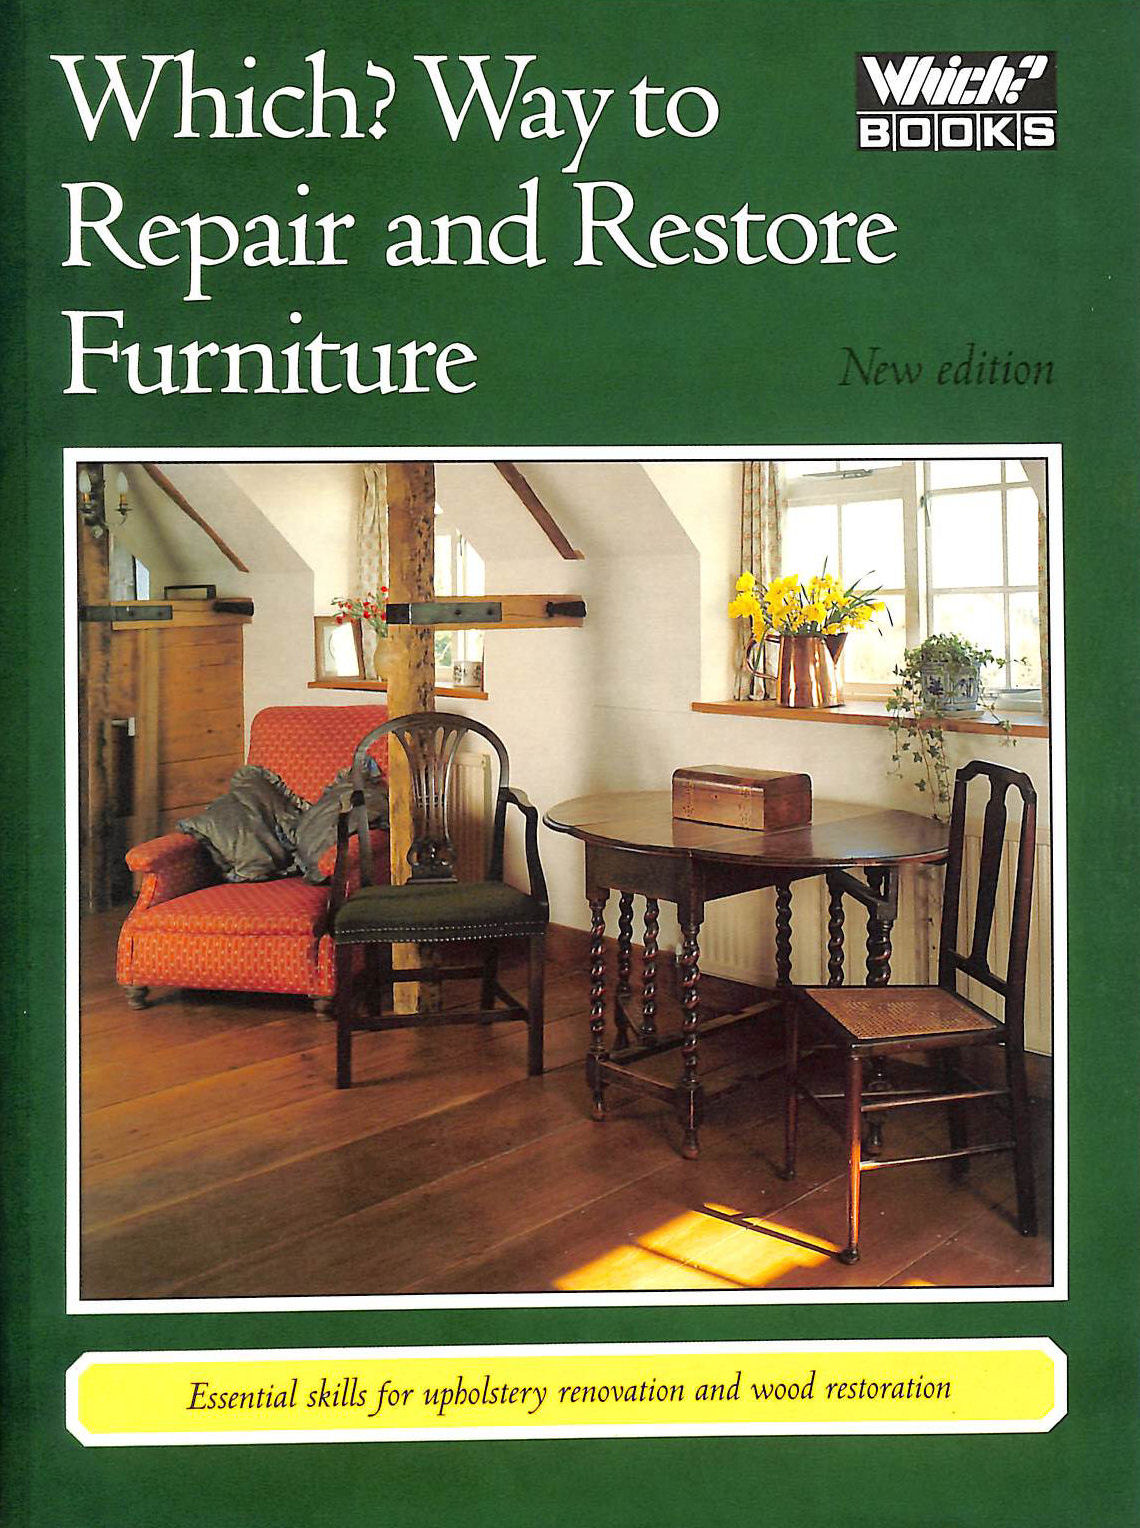 Image for Which? Way to Repair and Restore Furniture